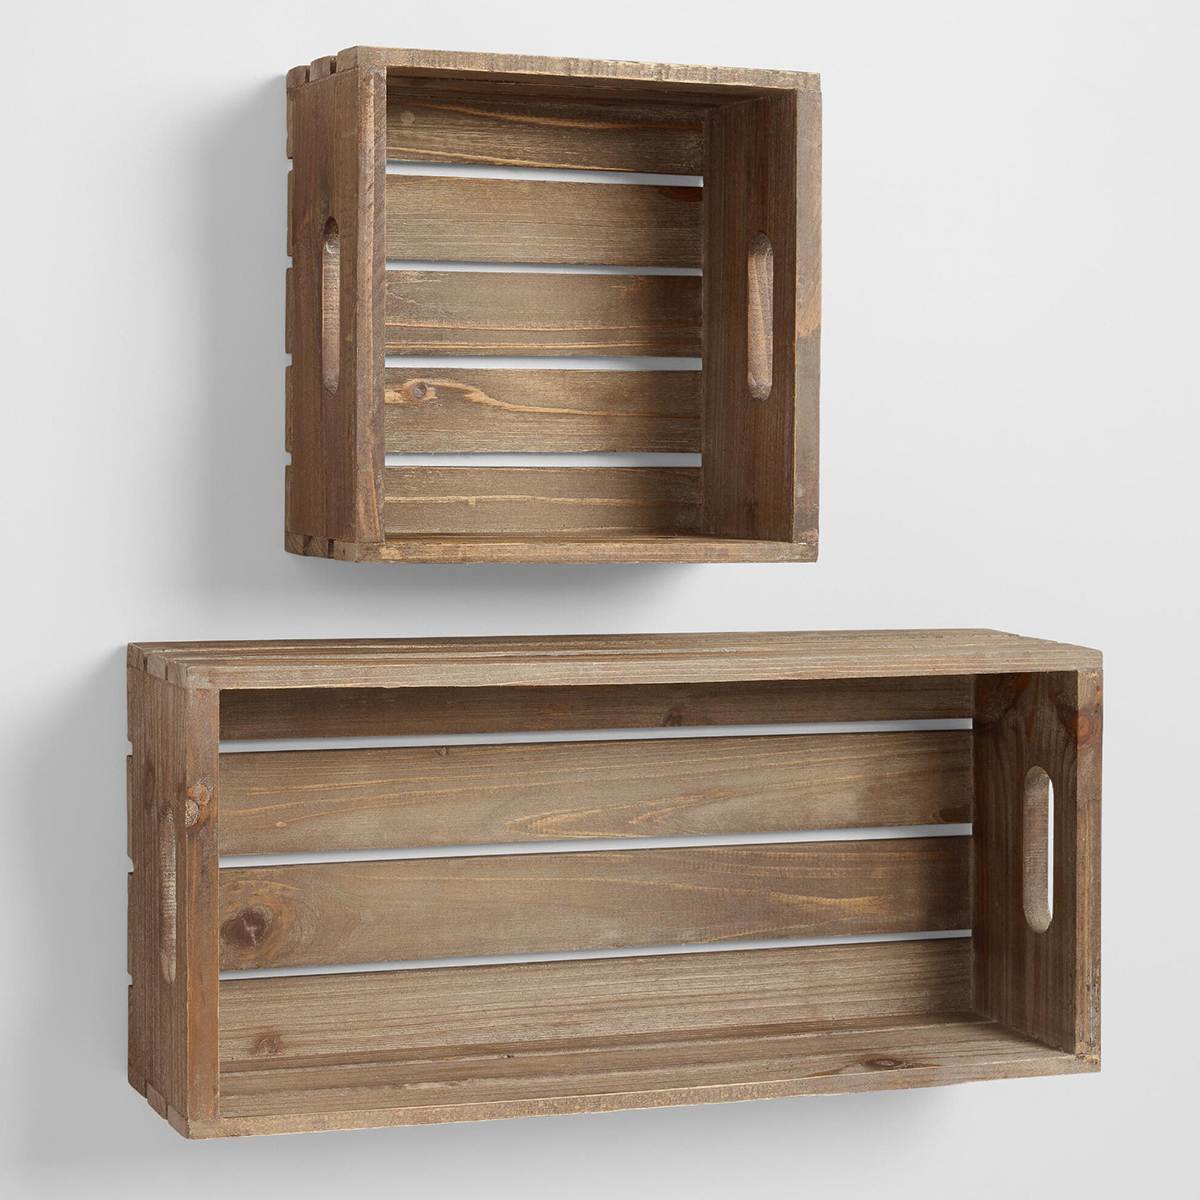 Wooden wall storage crates. photo